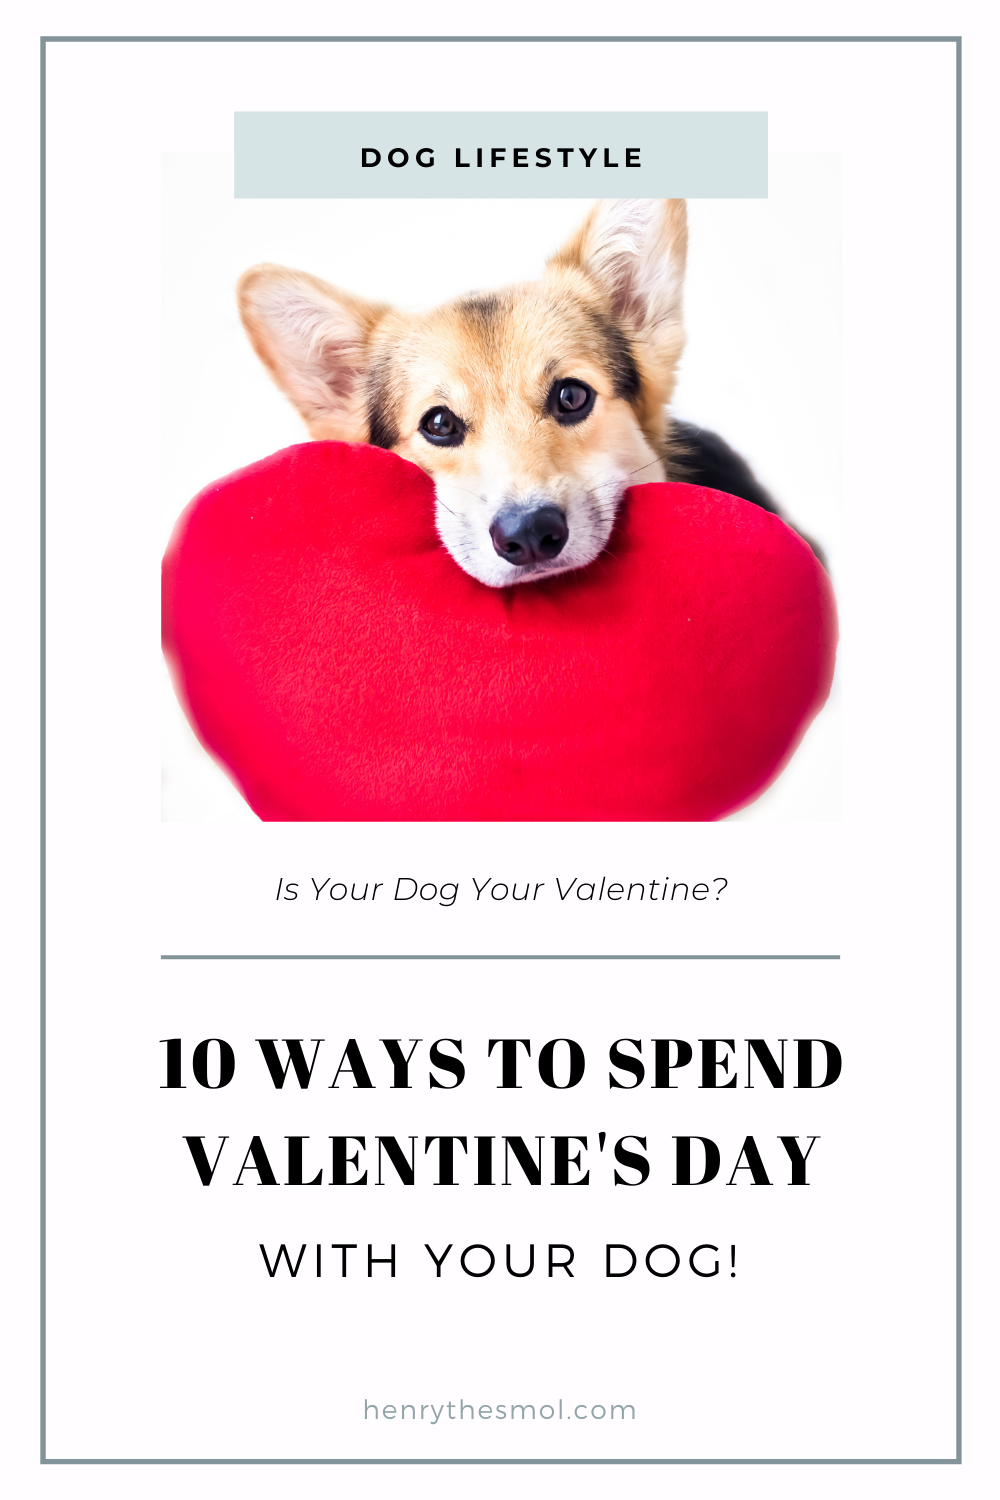 10 Ways To Spend Quality Time With Your Dog